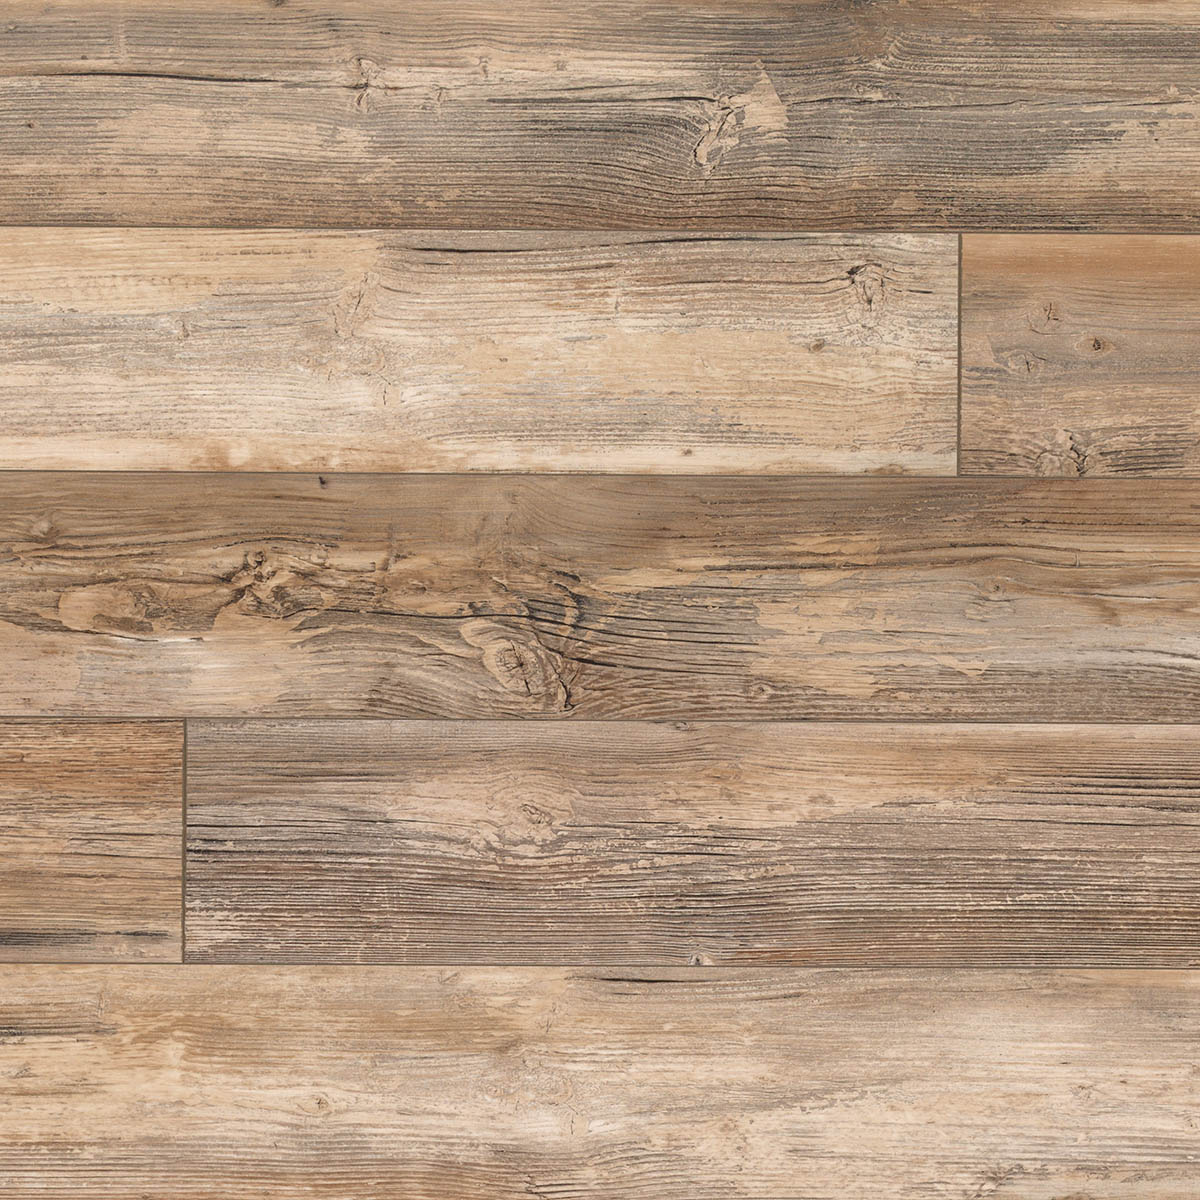 Cork Flooring Sacramento: Quick-Step Elevae Windblown Pine Laminate Flooring